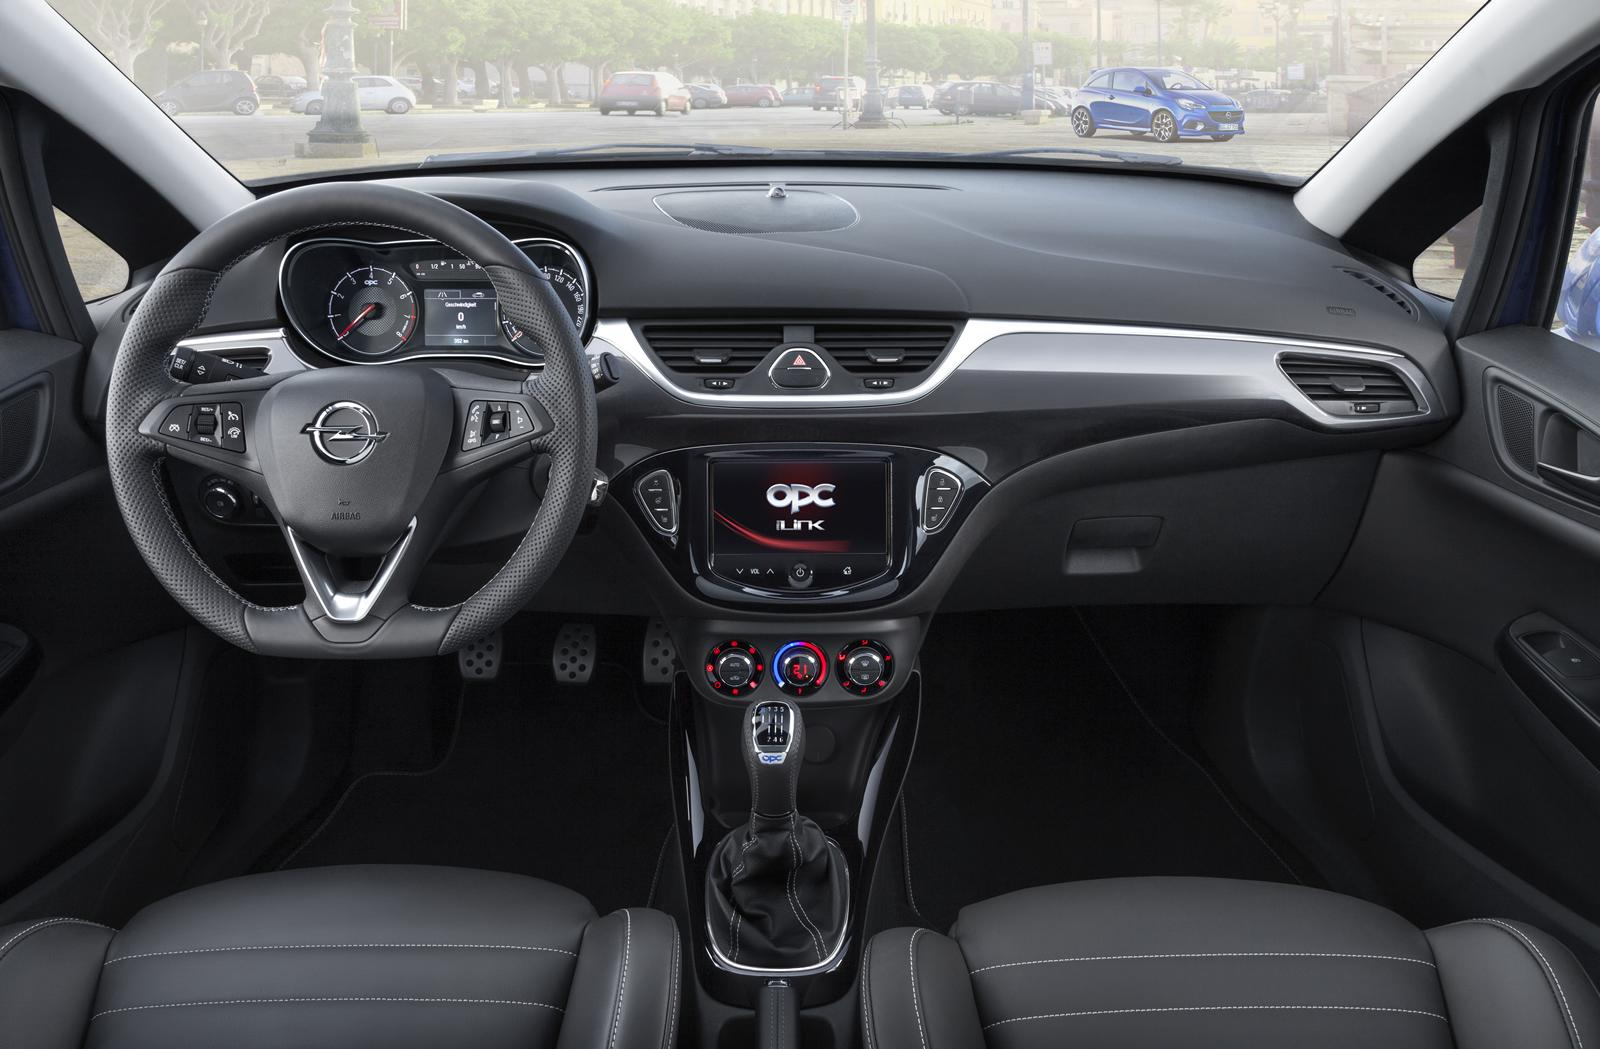 2015 opel corsa opc revealed with 207 hp 1 6 liter turbo. Black Bedroom Furniture Sets. Home Design Ideas